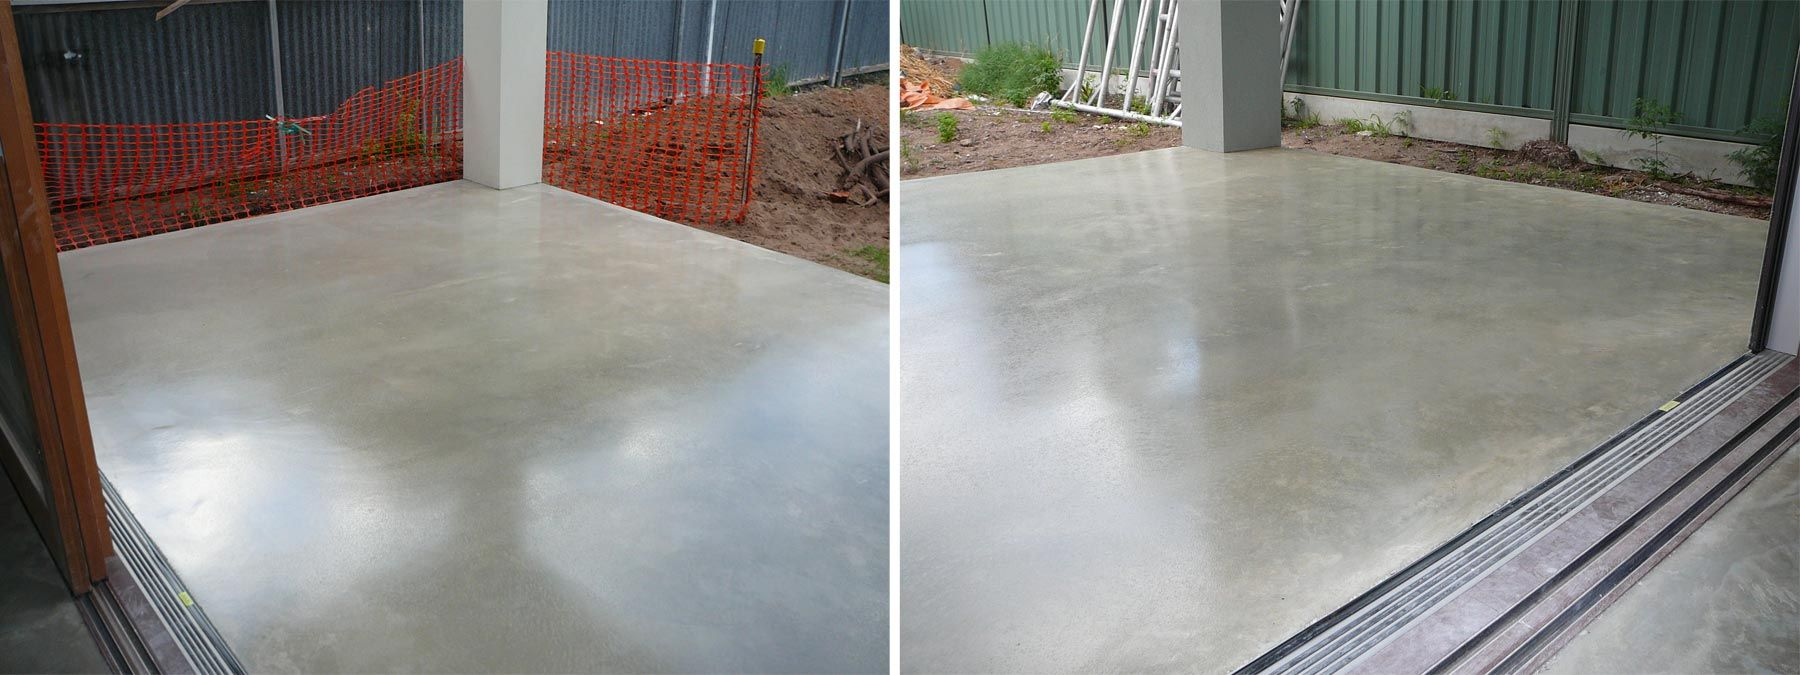 Genial Polished Concrete Patio   Google Search Concrete Patios, Polished Concrete,  Deck Patio, Concrete